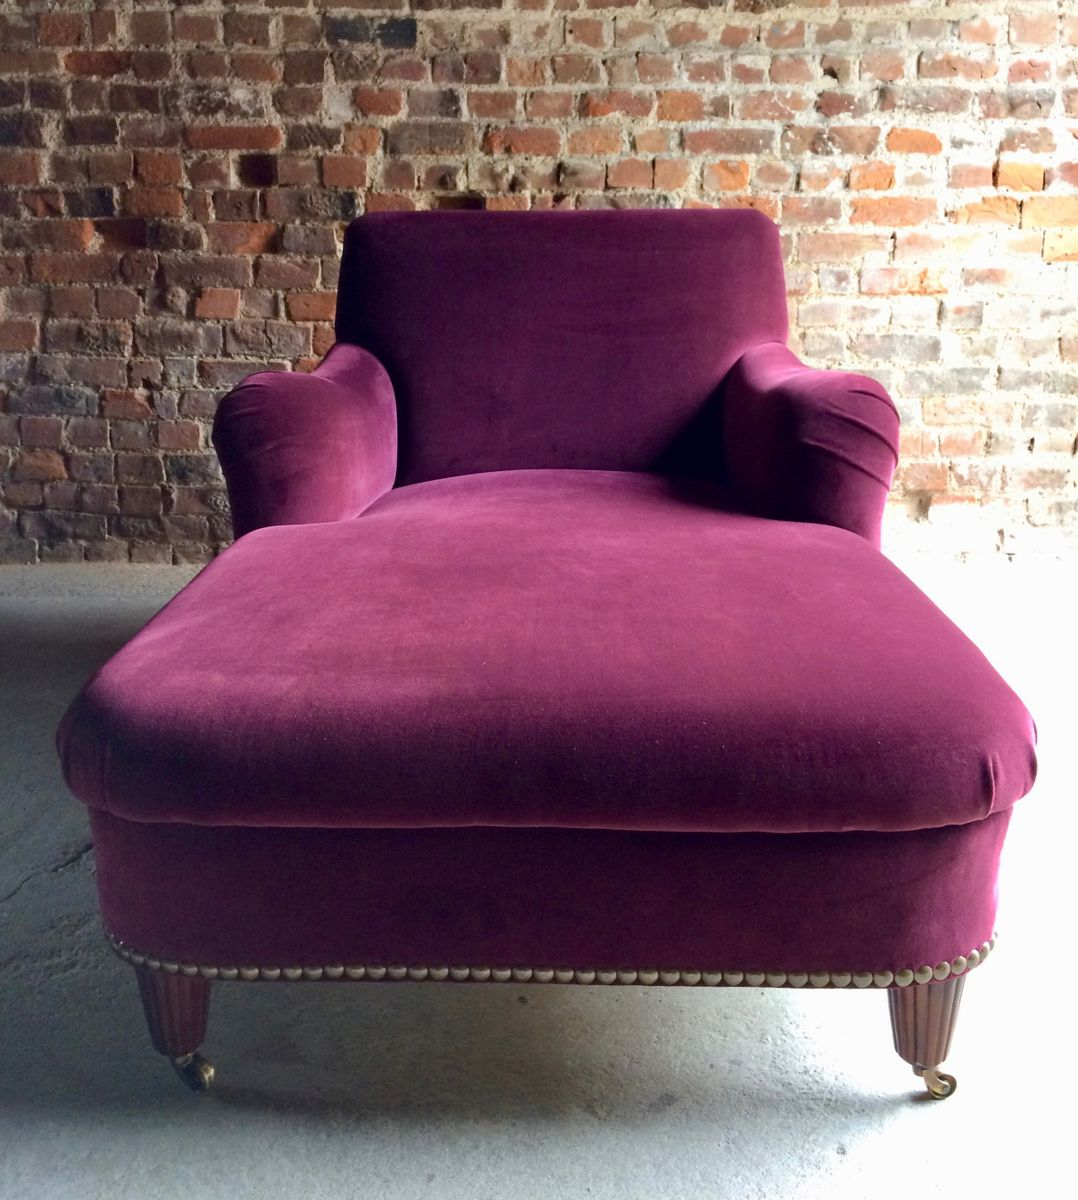 bohemian chaise longue sofa by ralph lauren 2000s for sale at pamono. Black Bedroom Furniture Sets. Home Design Ideas